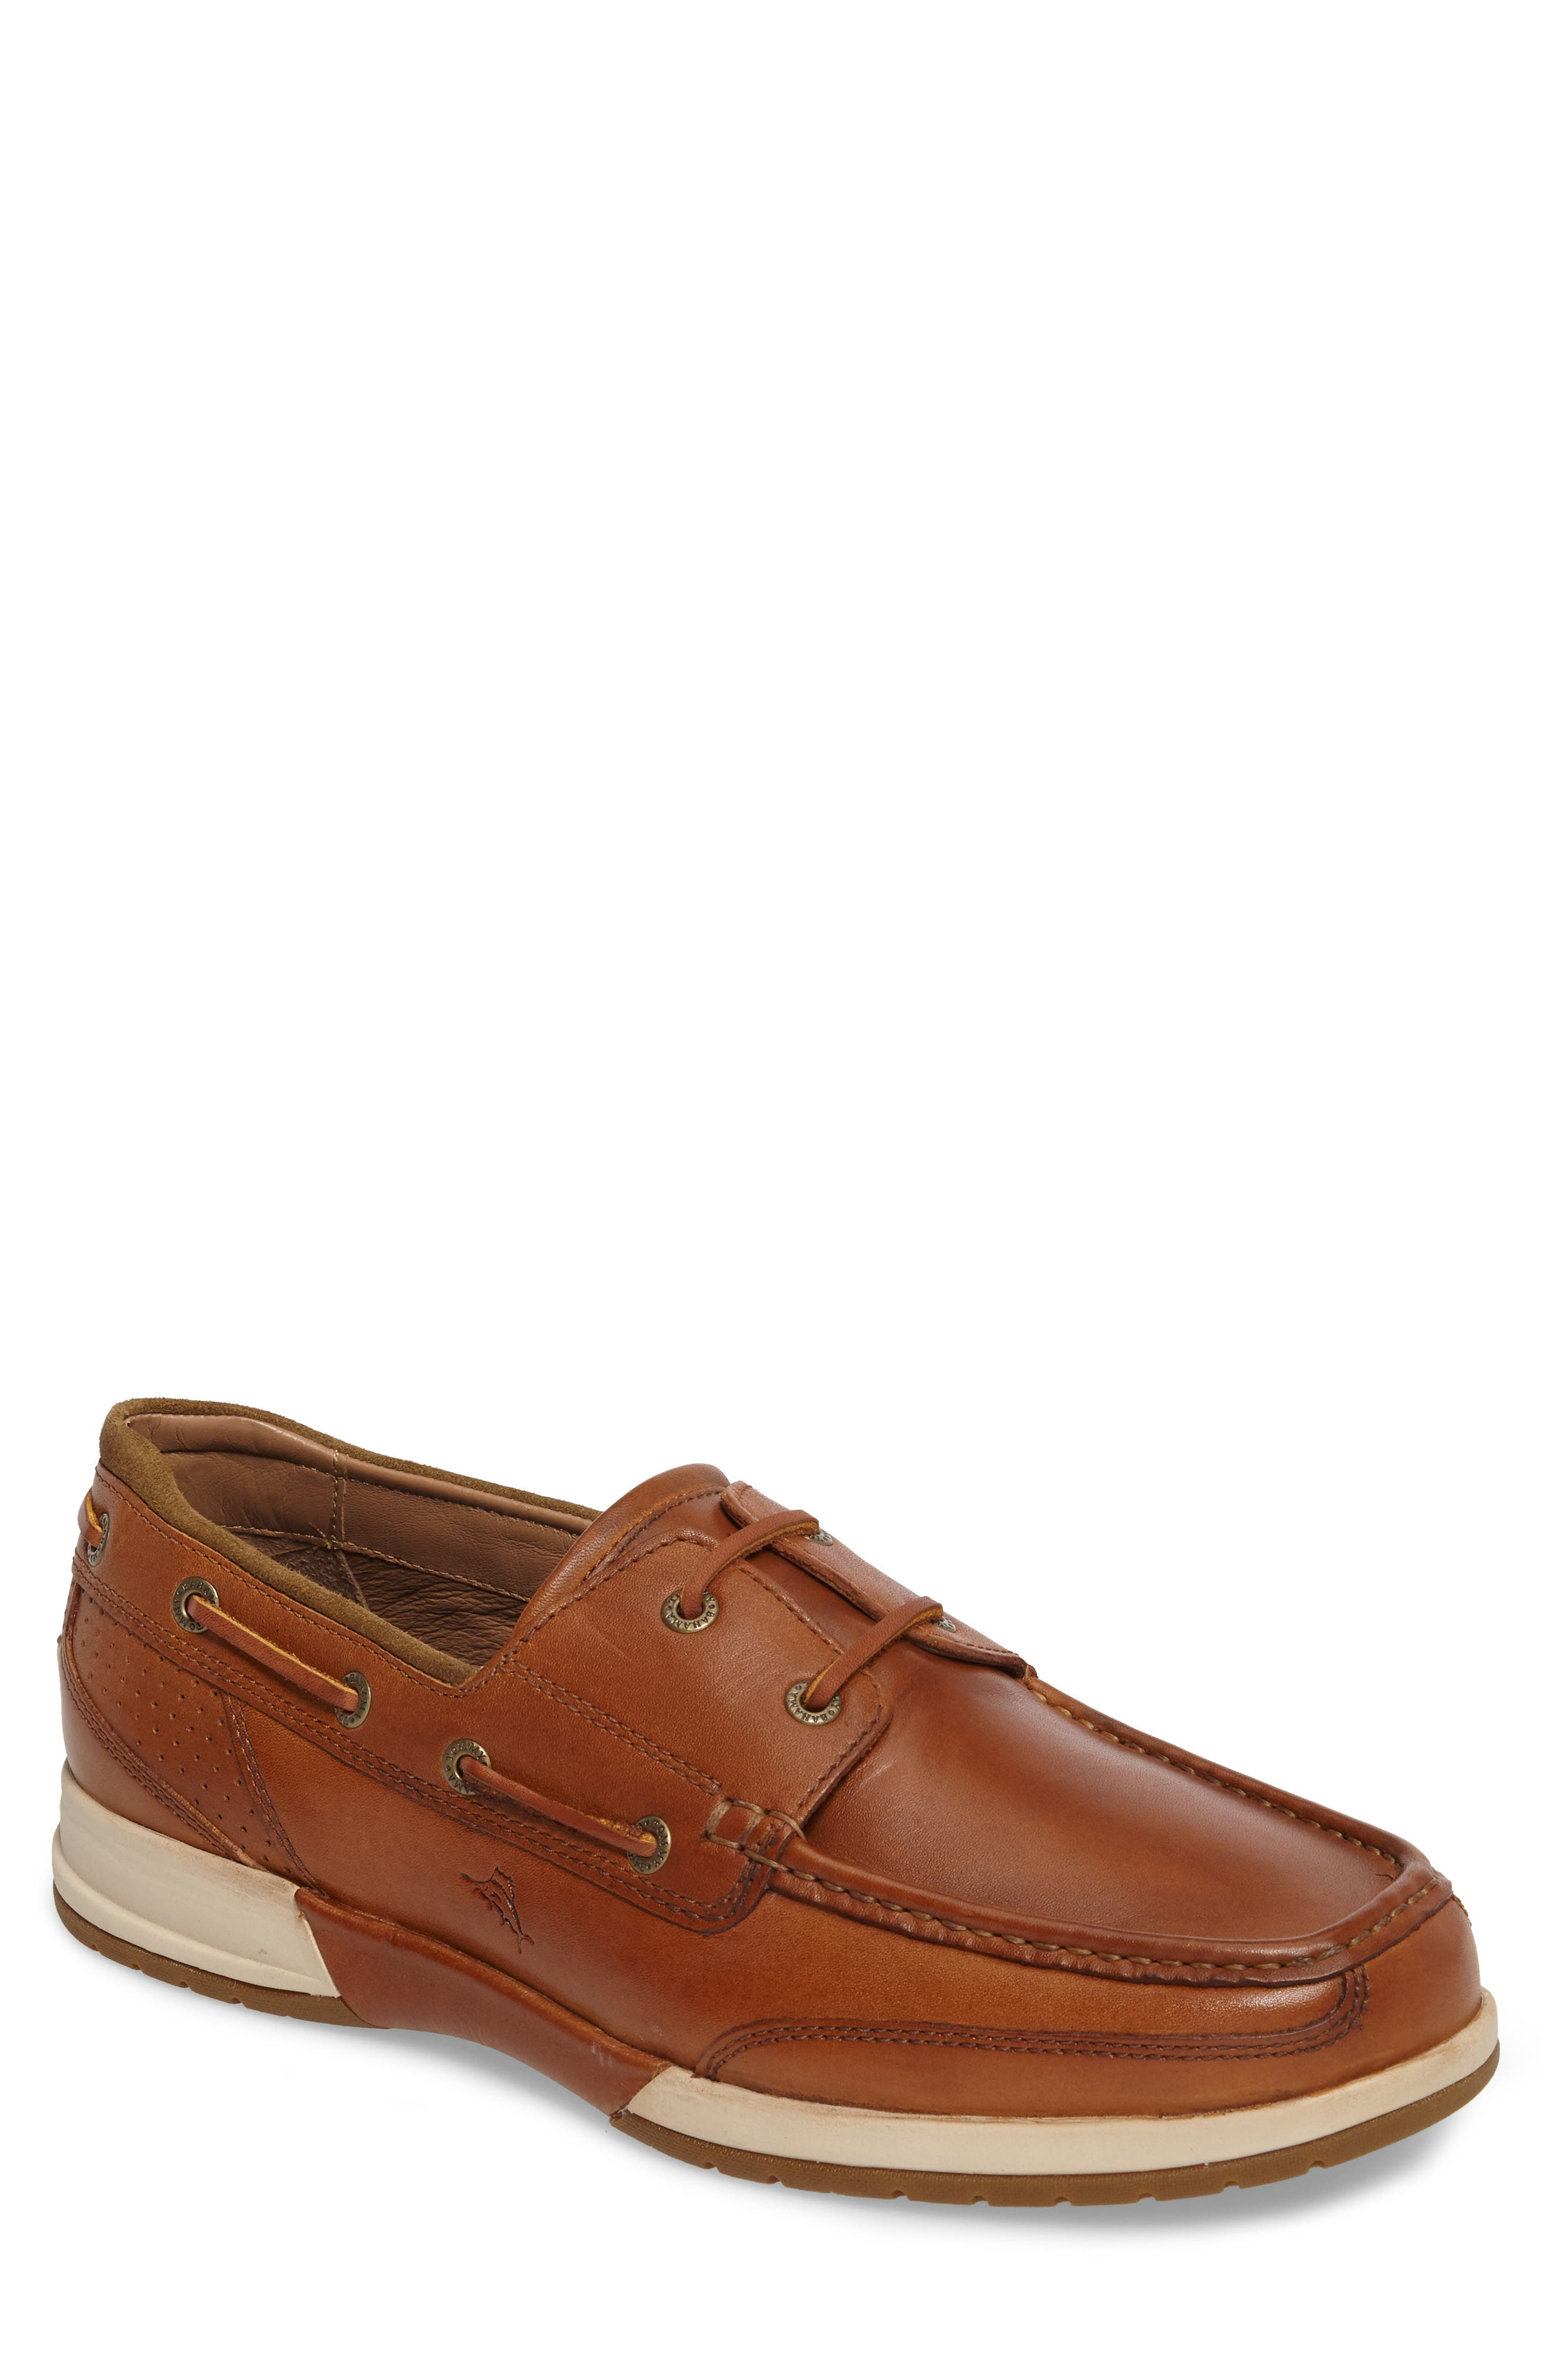 Ashore Thing Boat Shoe,                         Main,                         color, Tan Leather